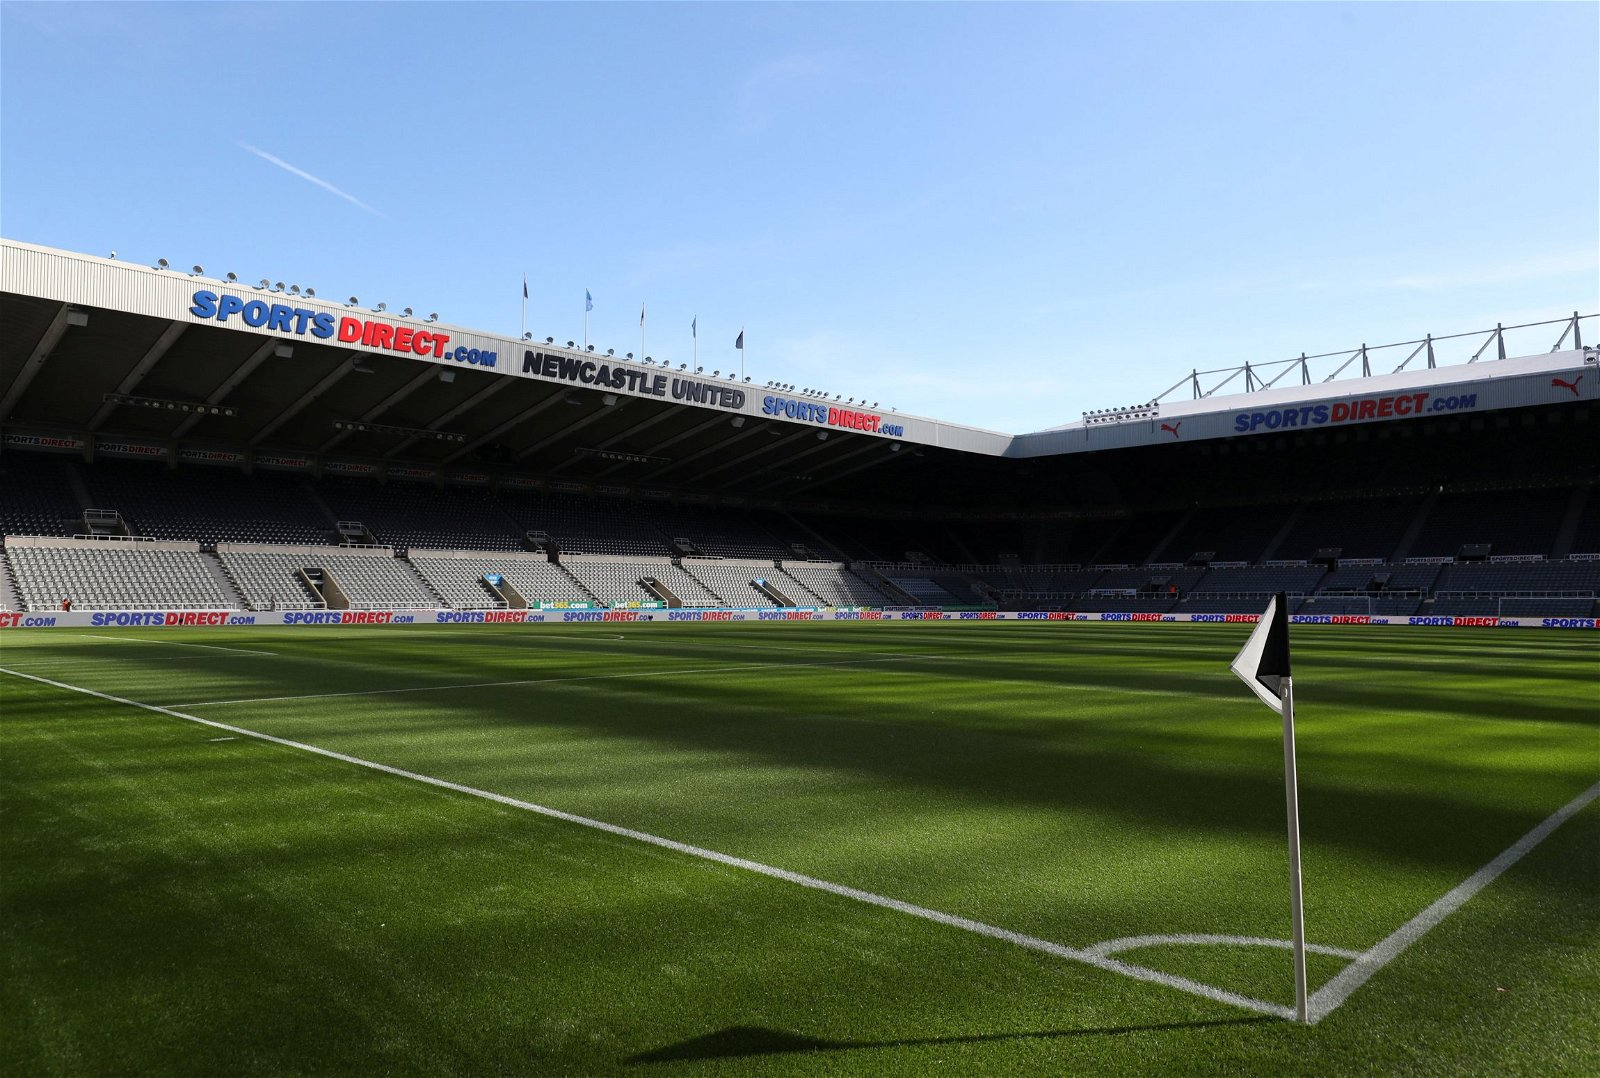 St James Park Newcastle United stadium - Backroom team, £1bn project: What Newcastle's mooted new owners can from Man City